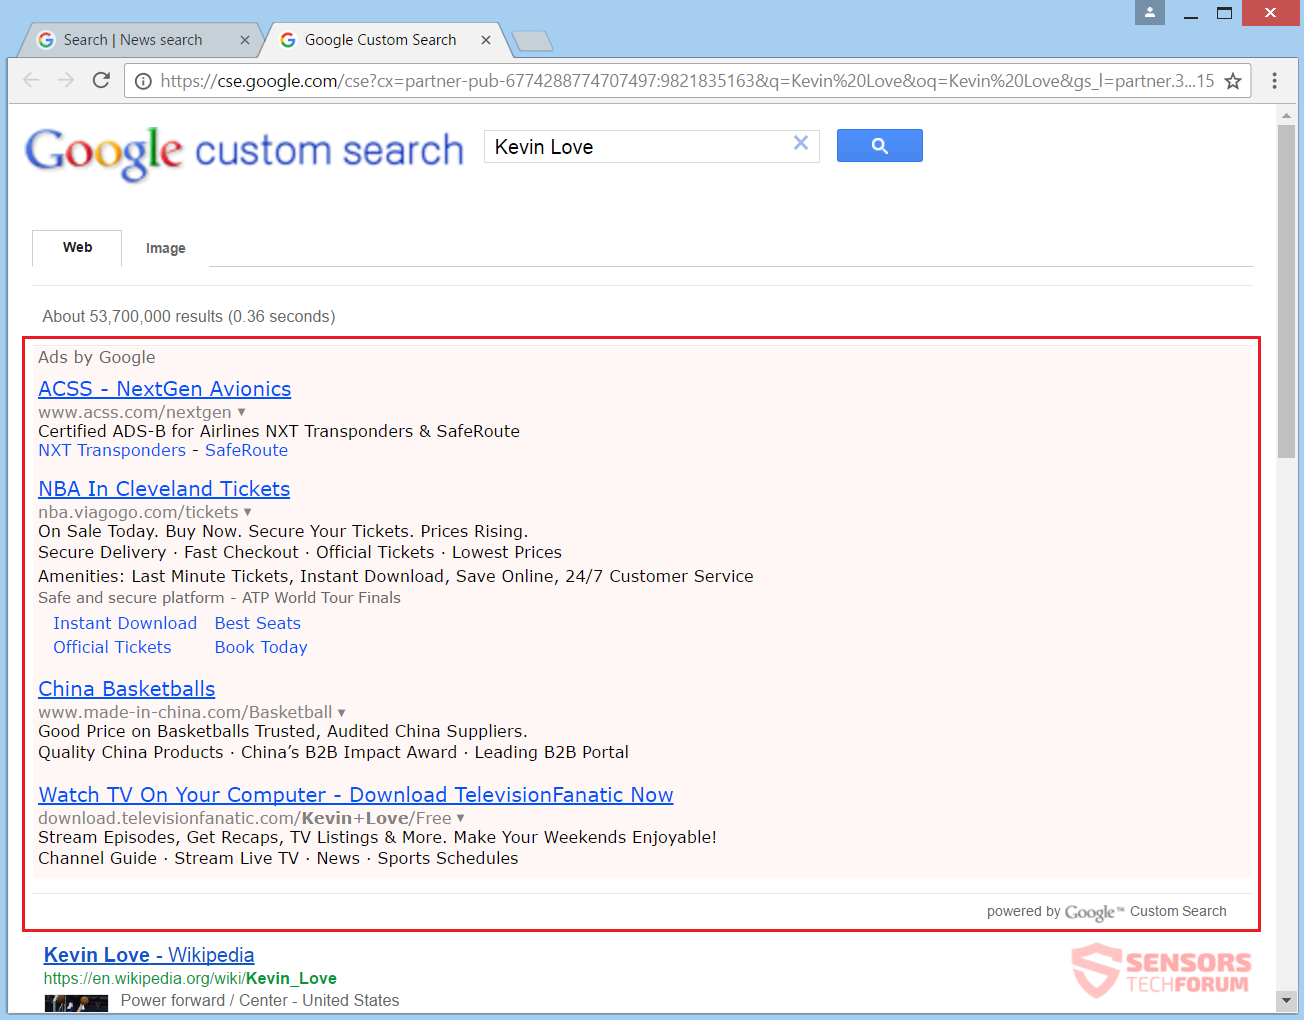 stf-gotosearch-ru-browser-hijacker-go-to-search-redirect-kevin-love-search-results